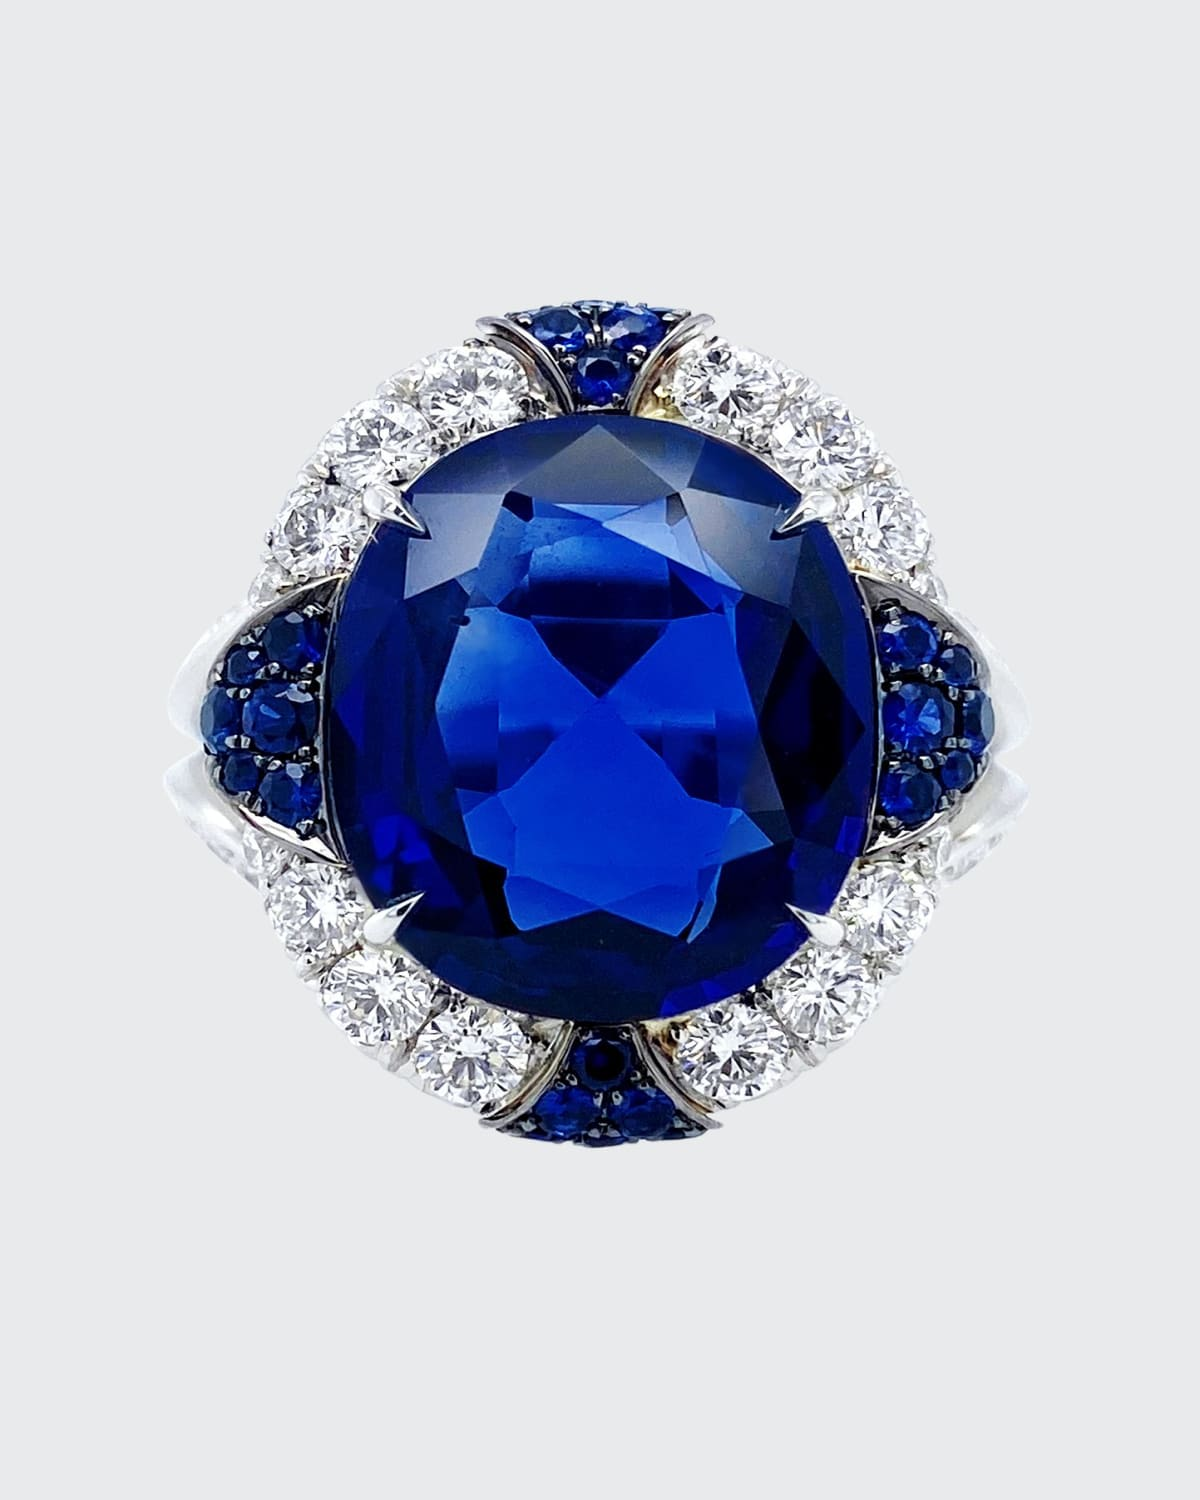 Oval Natural Royal Blue and Ceylon Sapphire Ring with Diamonds